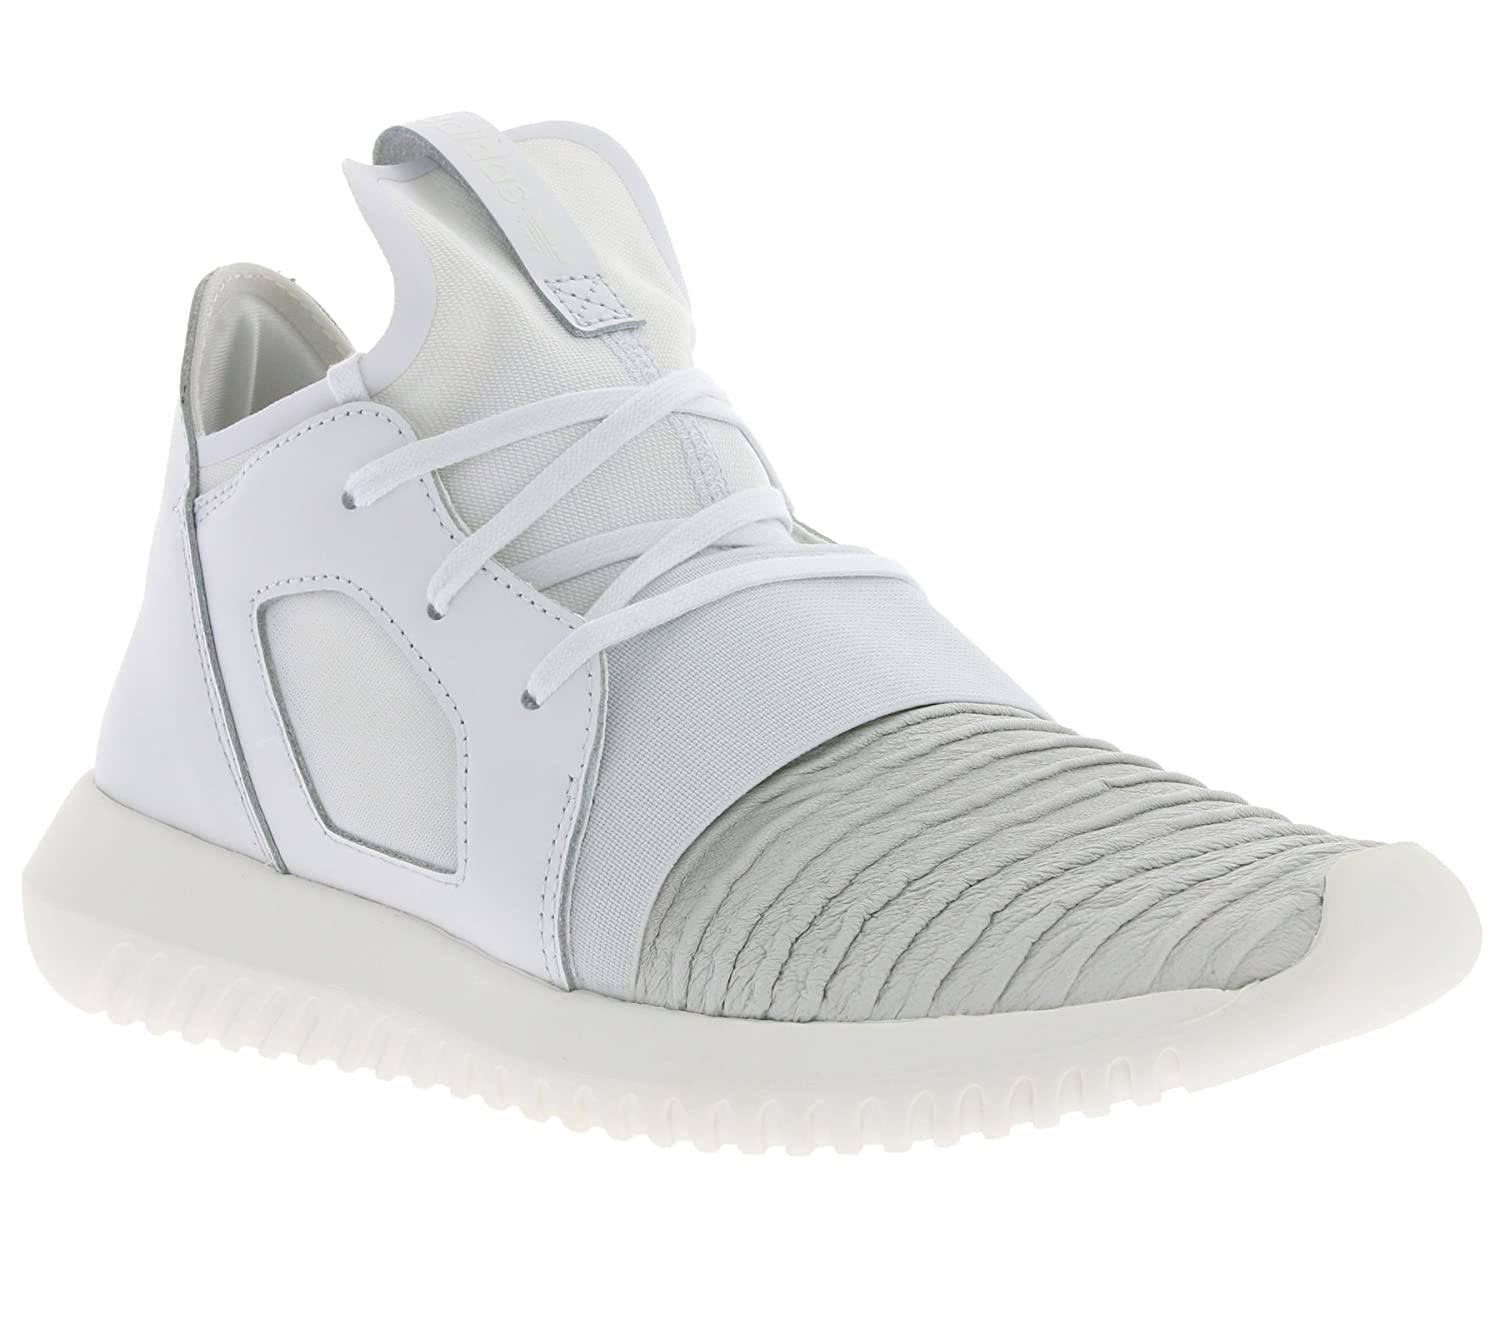 new arrival 9b4e2 22684 Bianco 37 1 3 EU Adidas Tubular Crystal White EU 37 UK 45 Scarpe gki